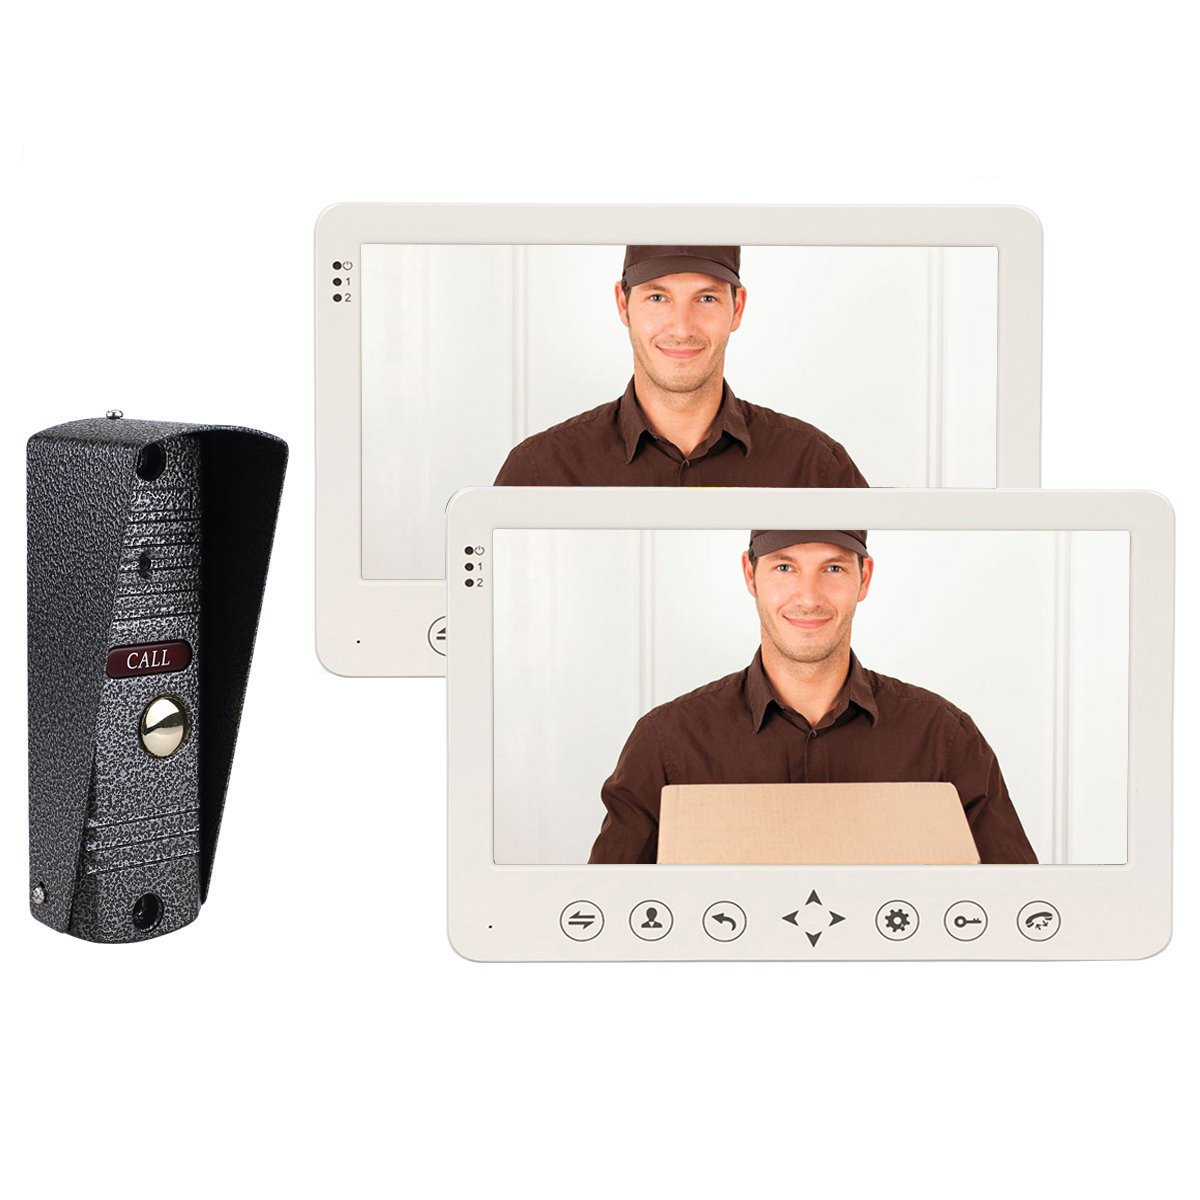 TIVDIO CP80 Video Door Phone Wired Video Intercom System Night Vision Doorbell Intercom with 1 IR Night Doorbell Camera and 2 Hands Free Monitor Intercom Doorbell (2 Monitor 1 Camera)